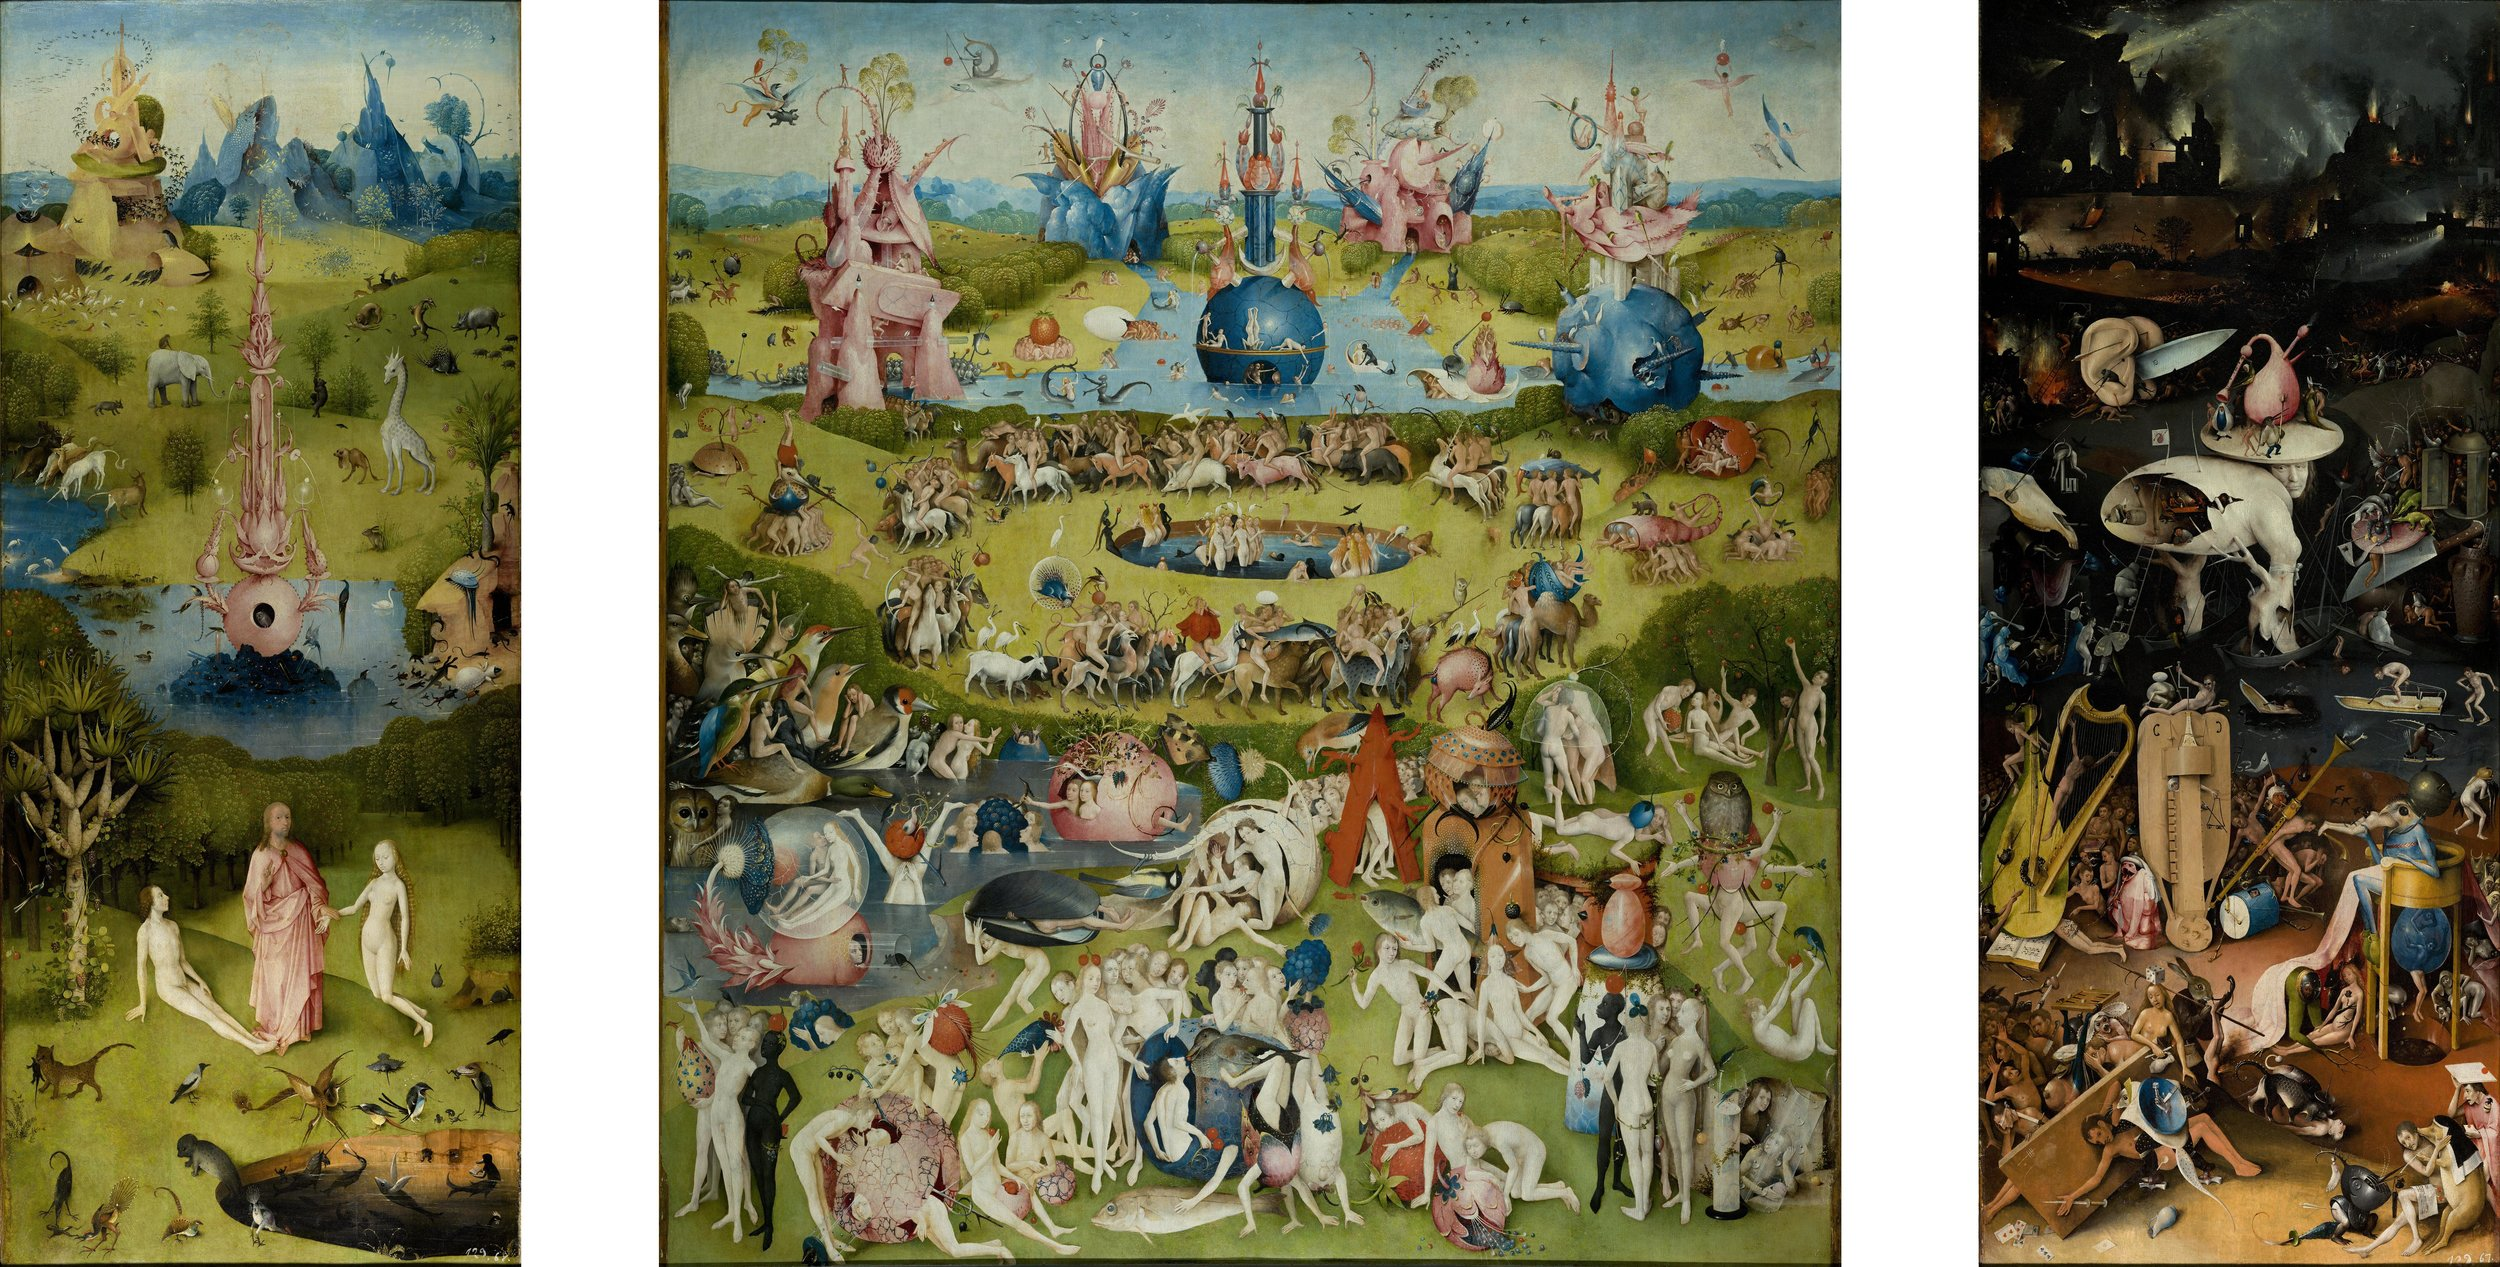 The Garden of Earthly Delights , By Hieronymus Bosch